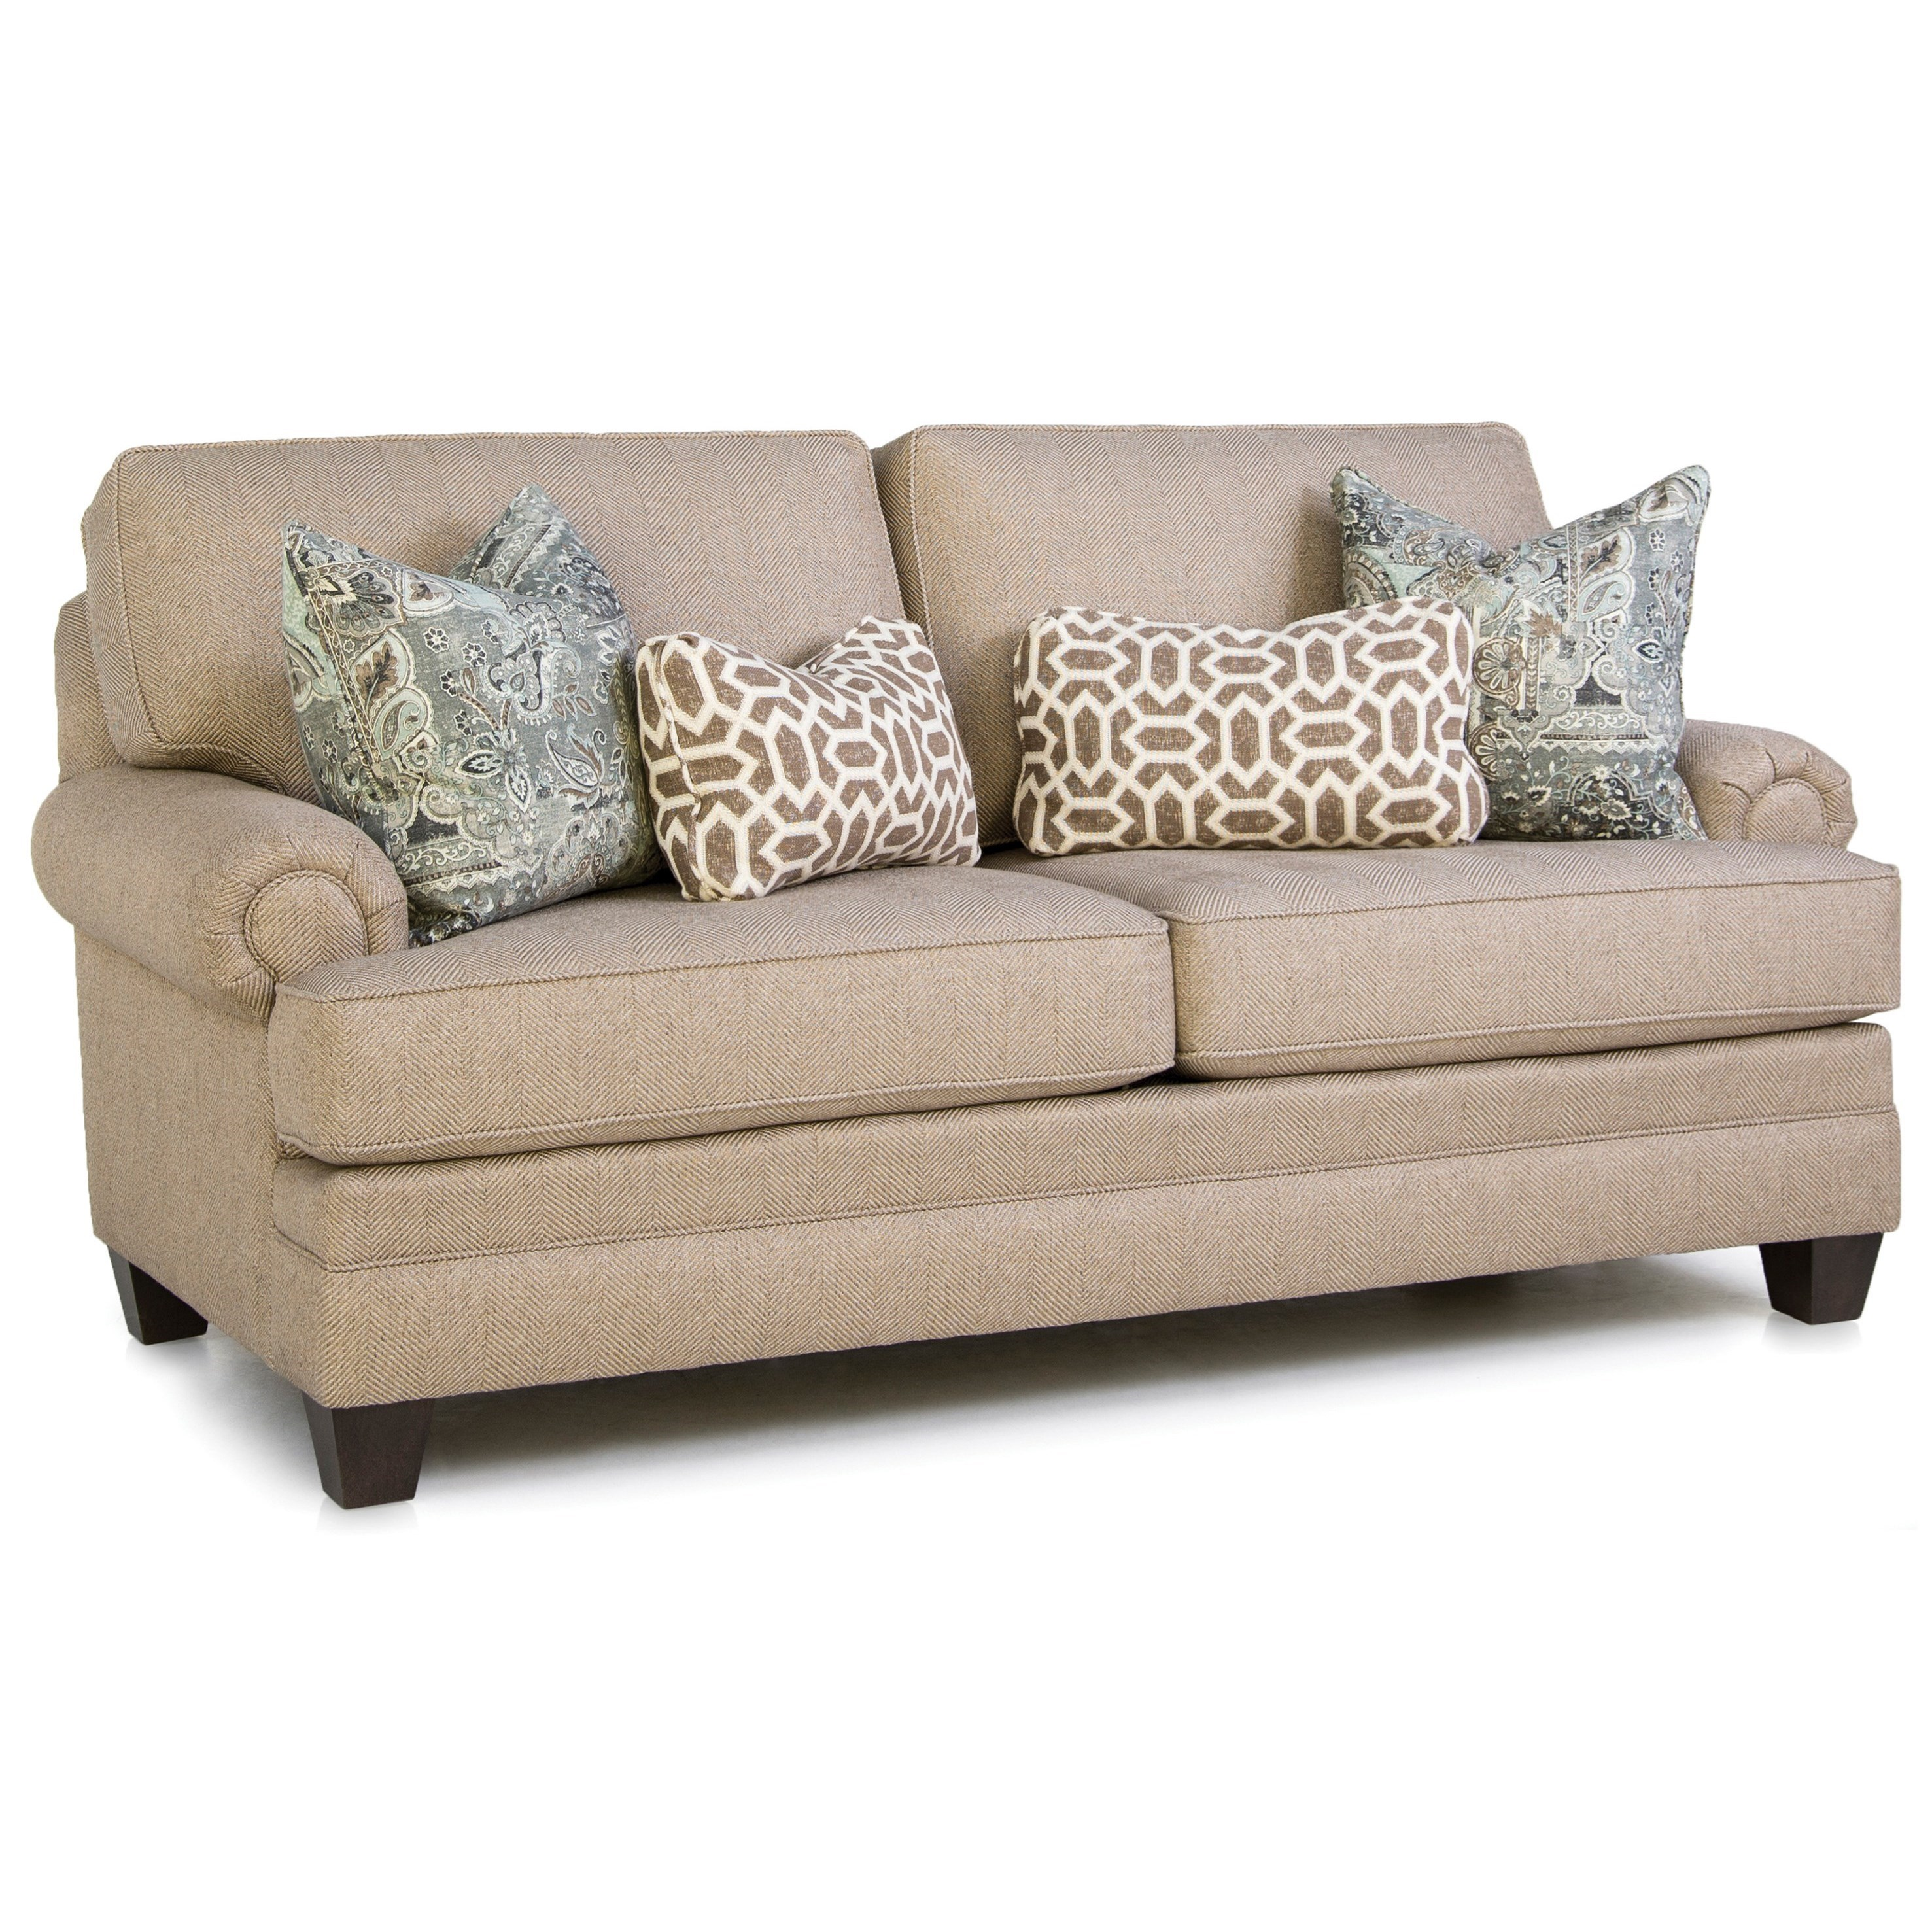 Build Your Own 5000 Series Customizable Mid-Size Sofa by Smith Brothers at Saugerties Furniture Mart